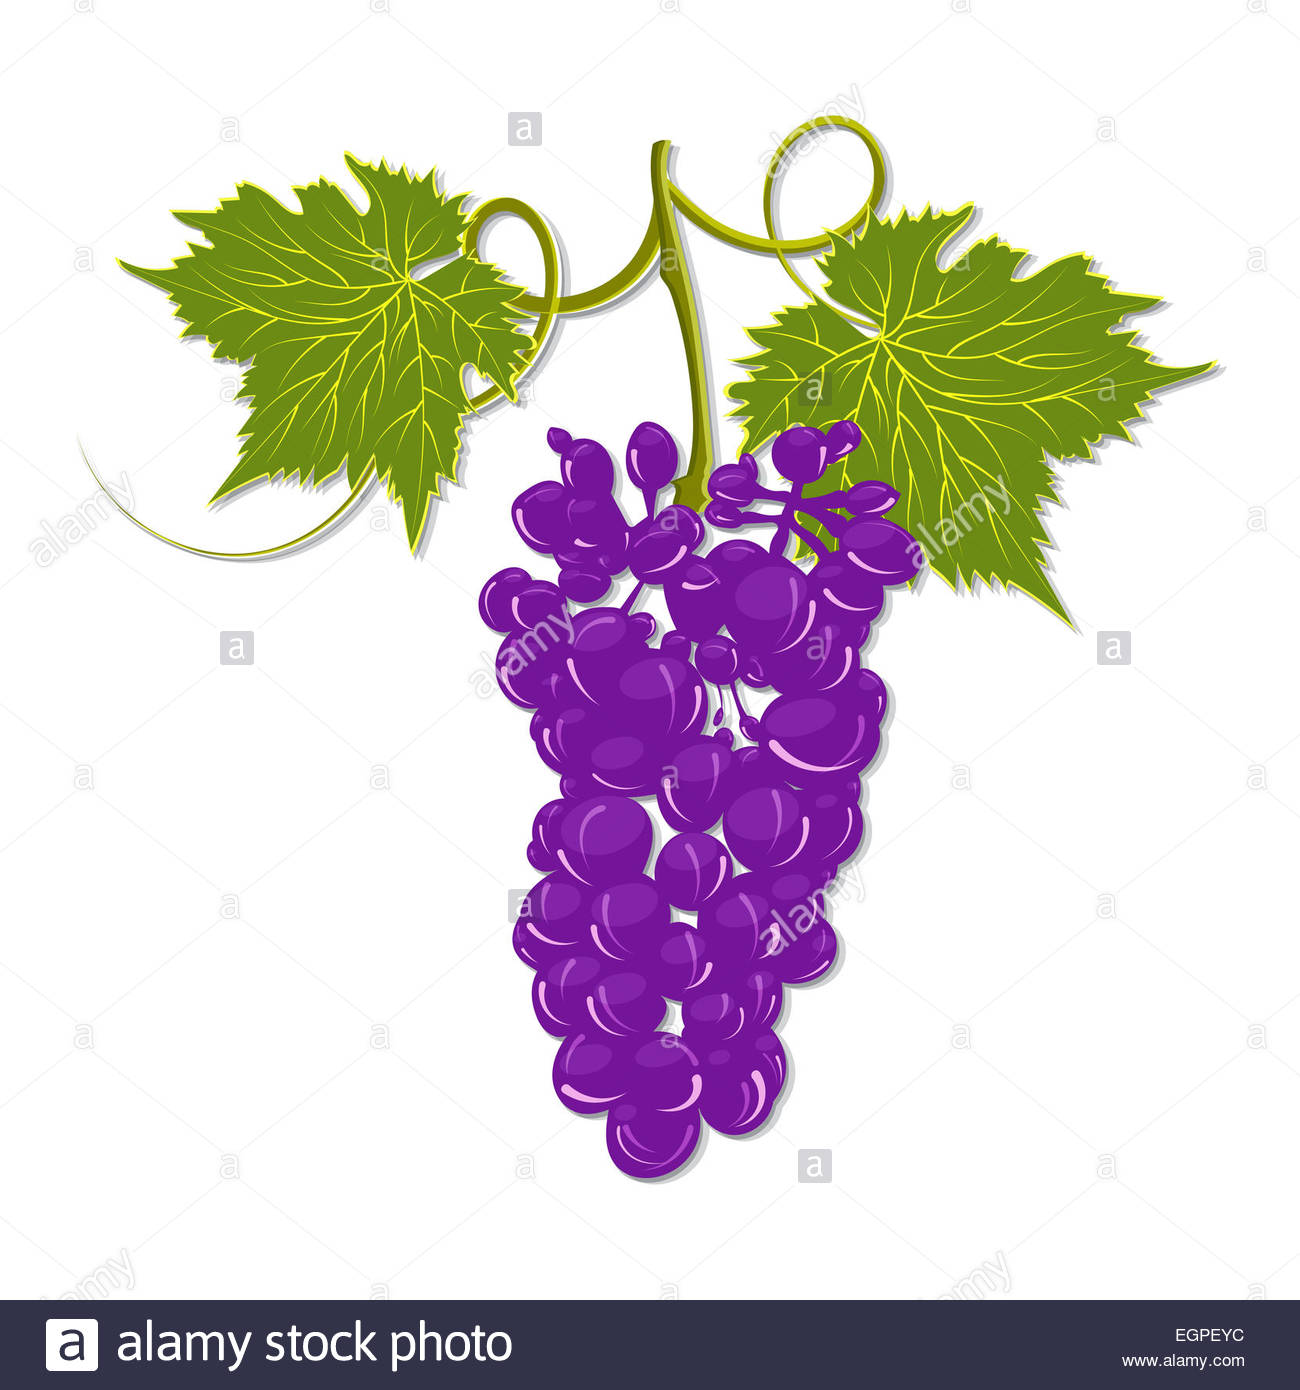 1300x1390 Hand Drawing A Bunch Of Grapes With Leaves On A White Background